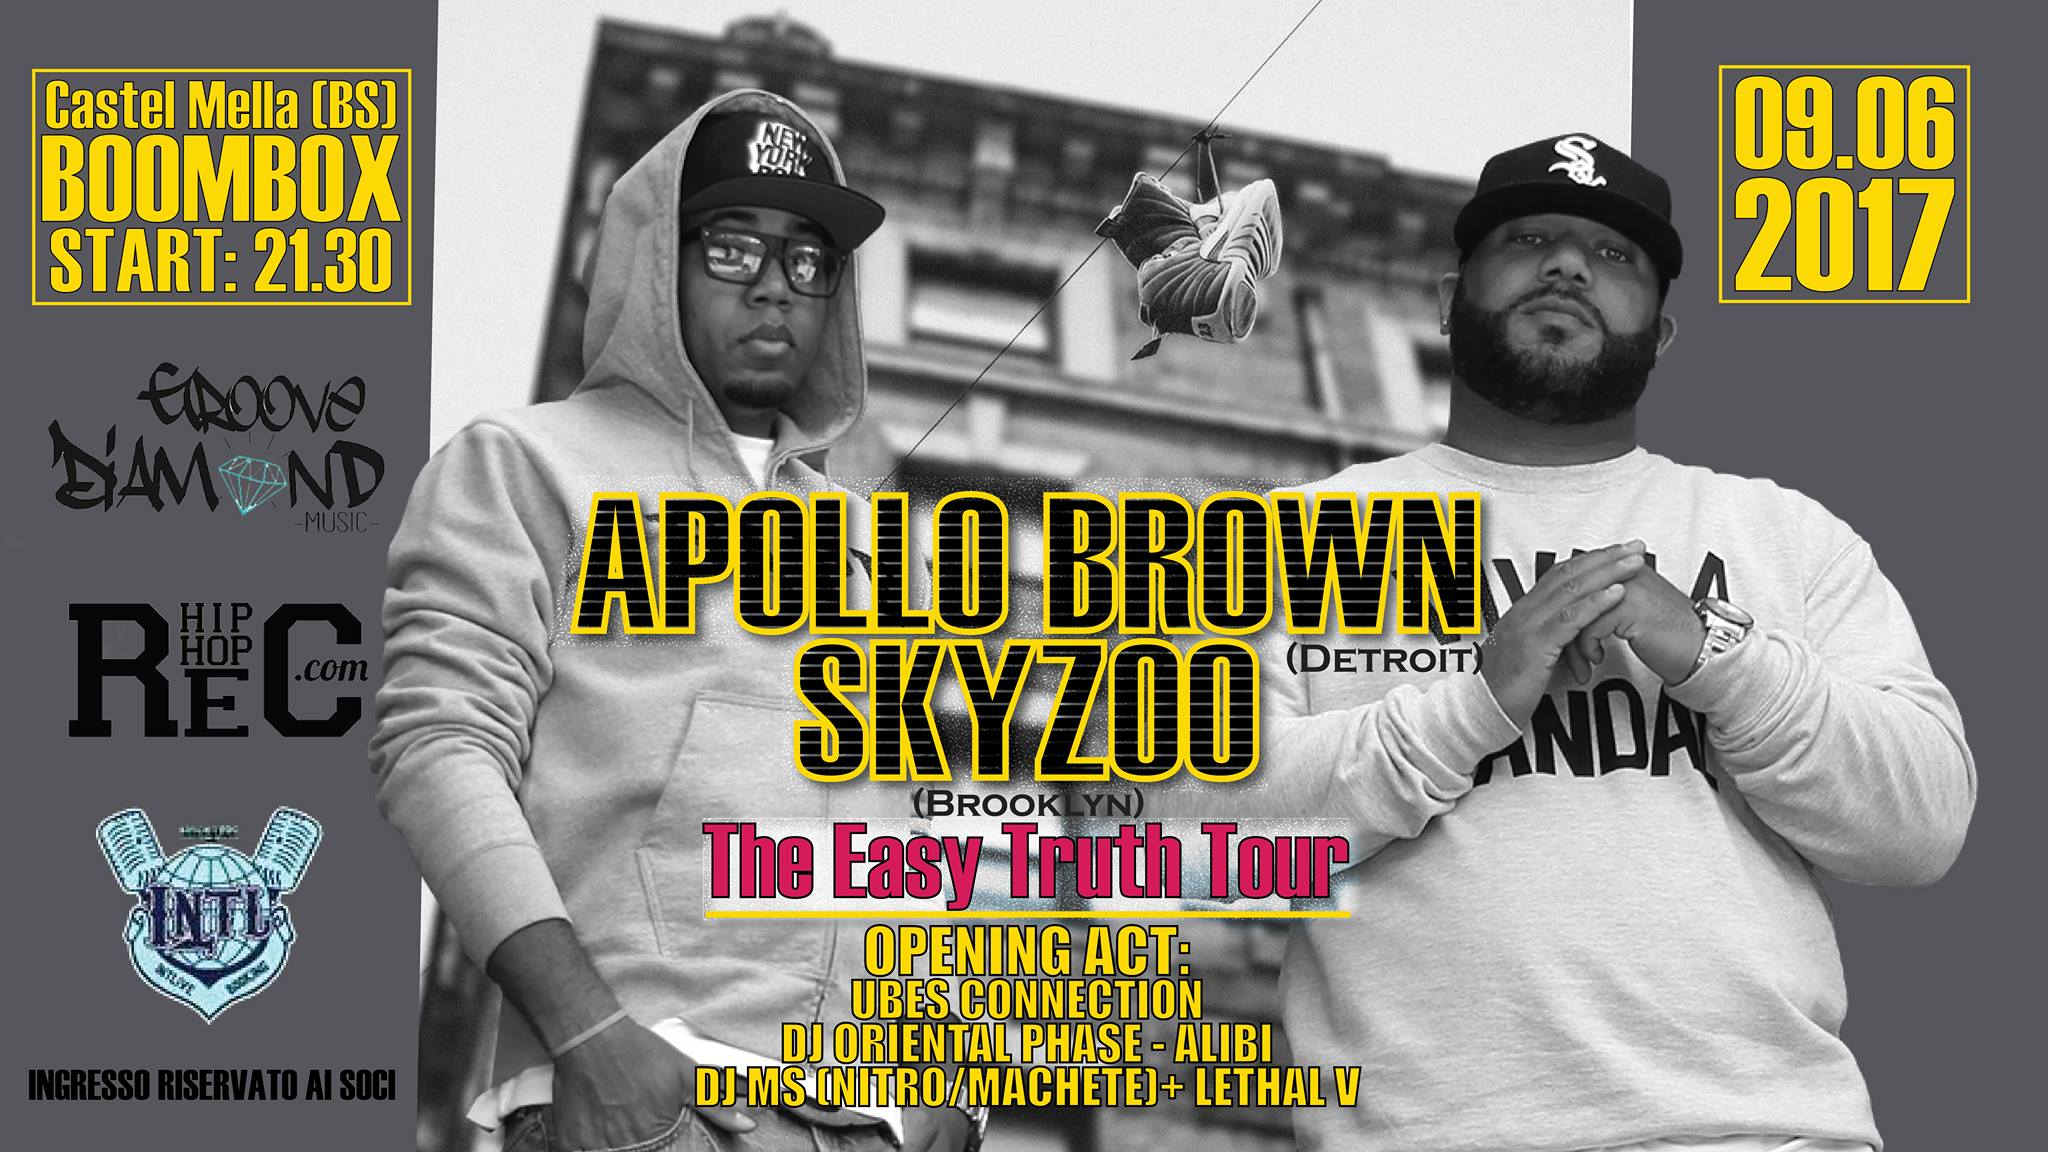 Apollo_Brown_Skyzoo_brescia_boombox